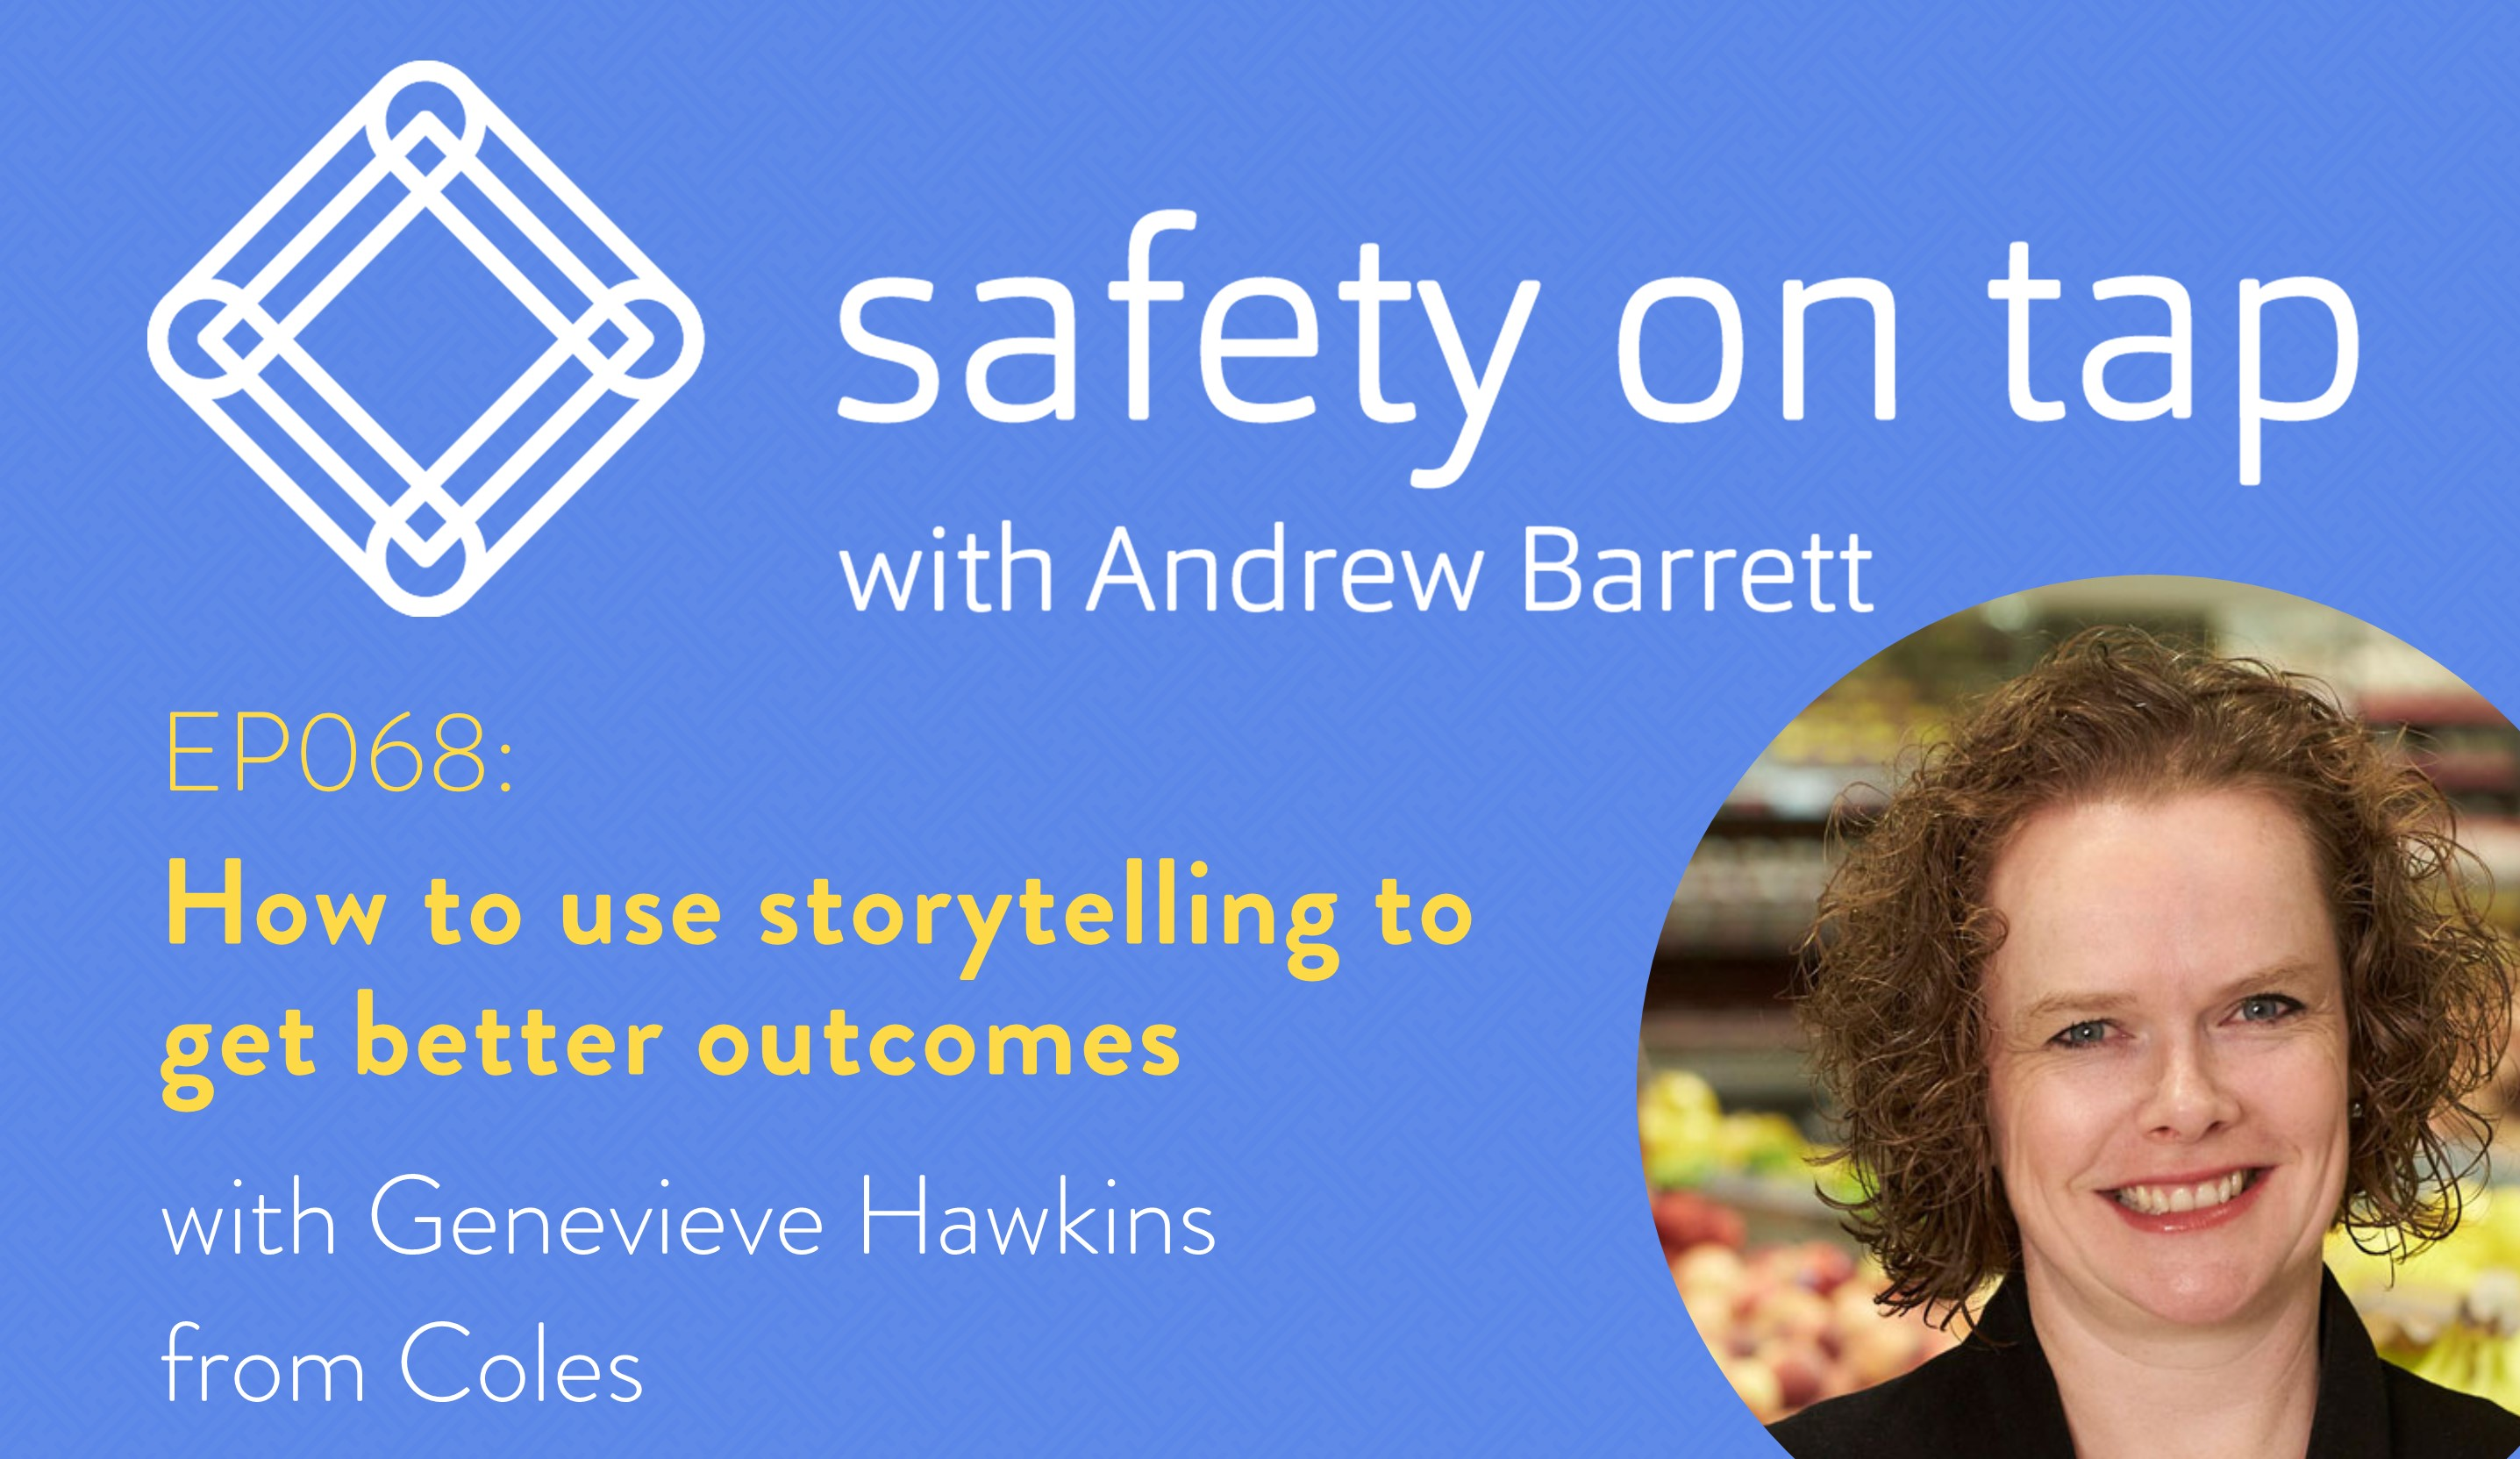 Ep068: How to use storytelling to get better outcomes, with Genevieve Hawkins